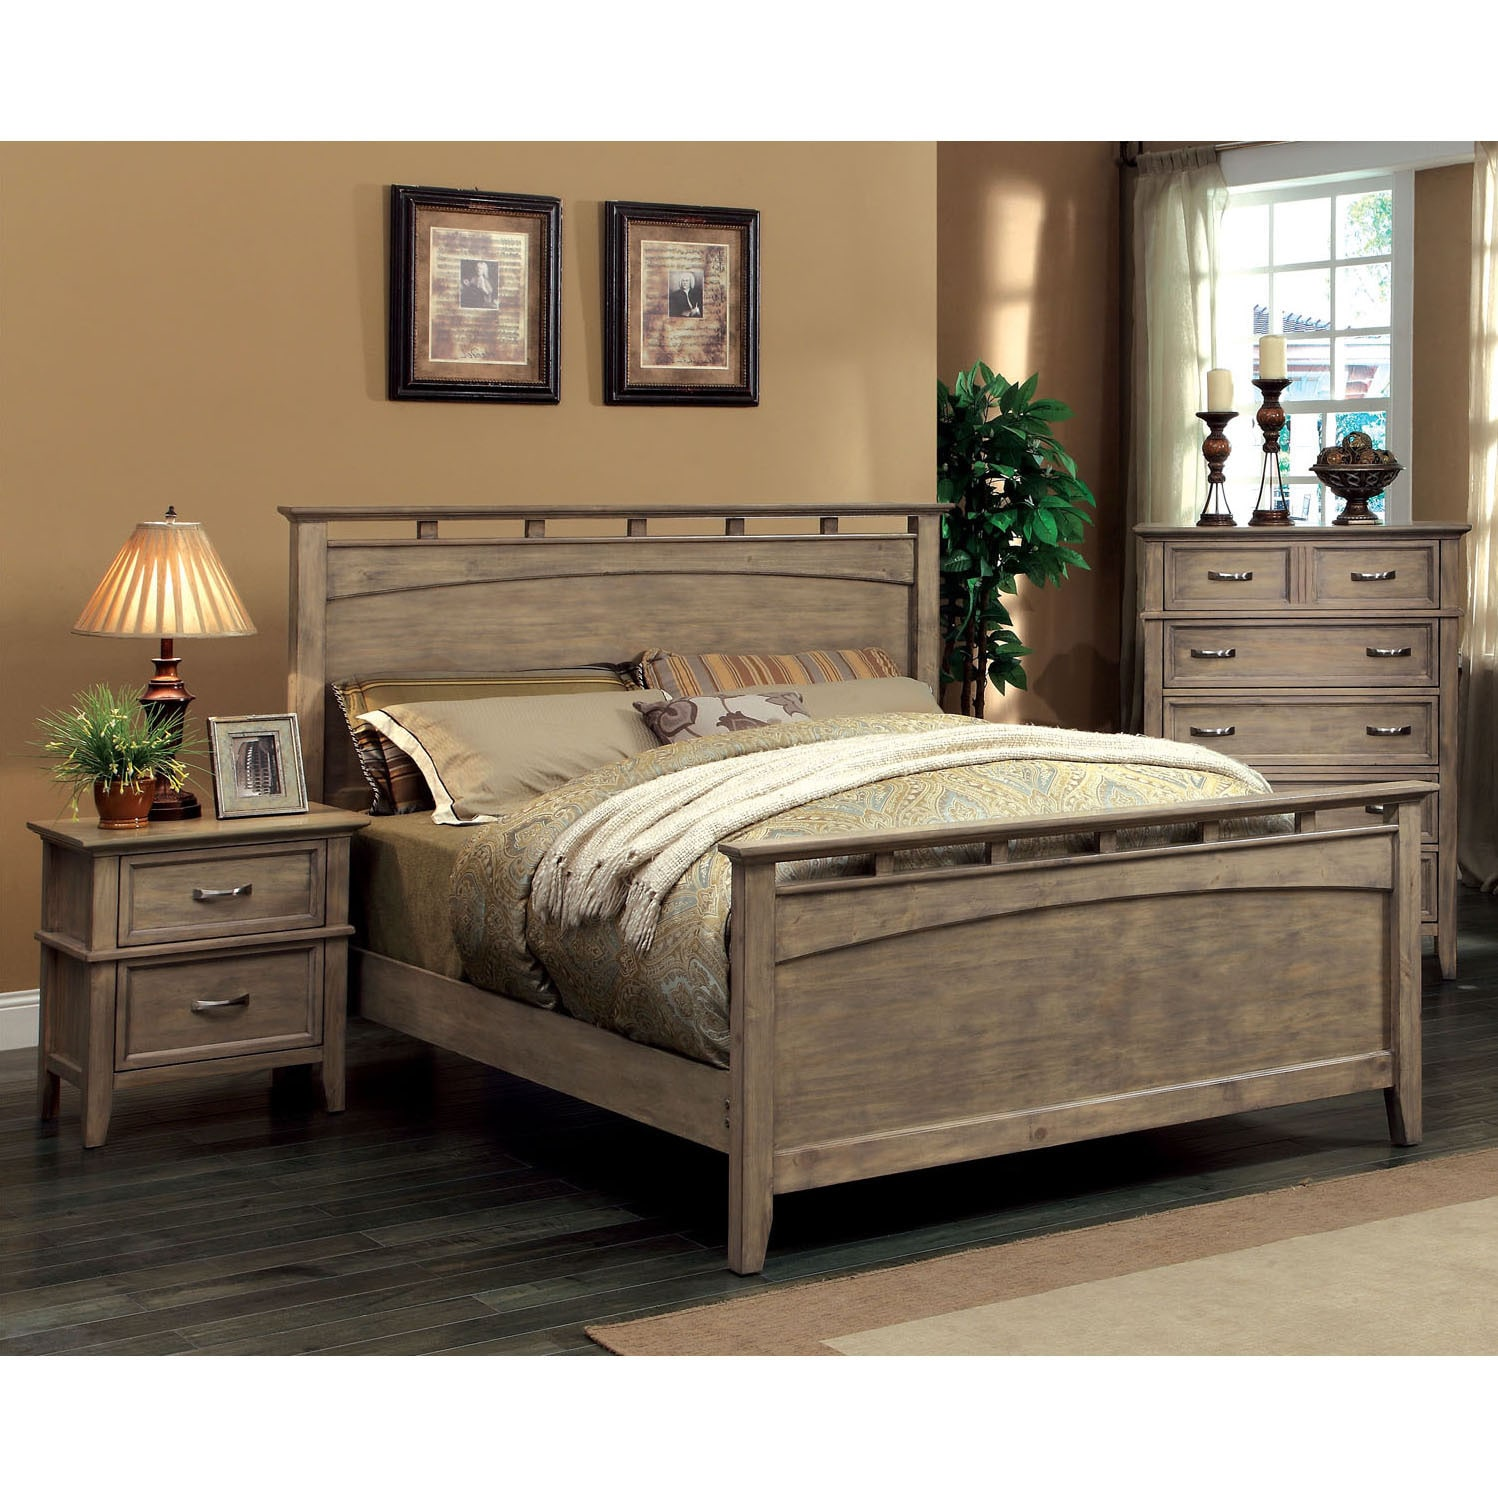 Shop Furniture Of America Shoreline Weathered Oak Platform